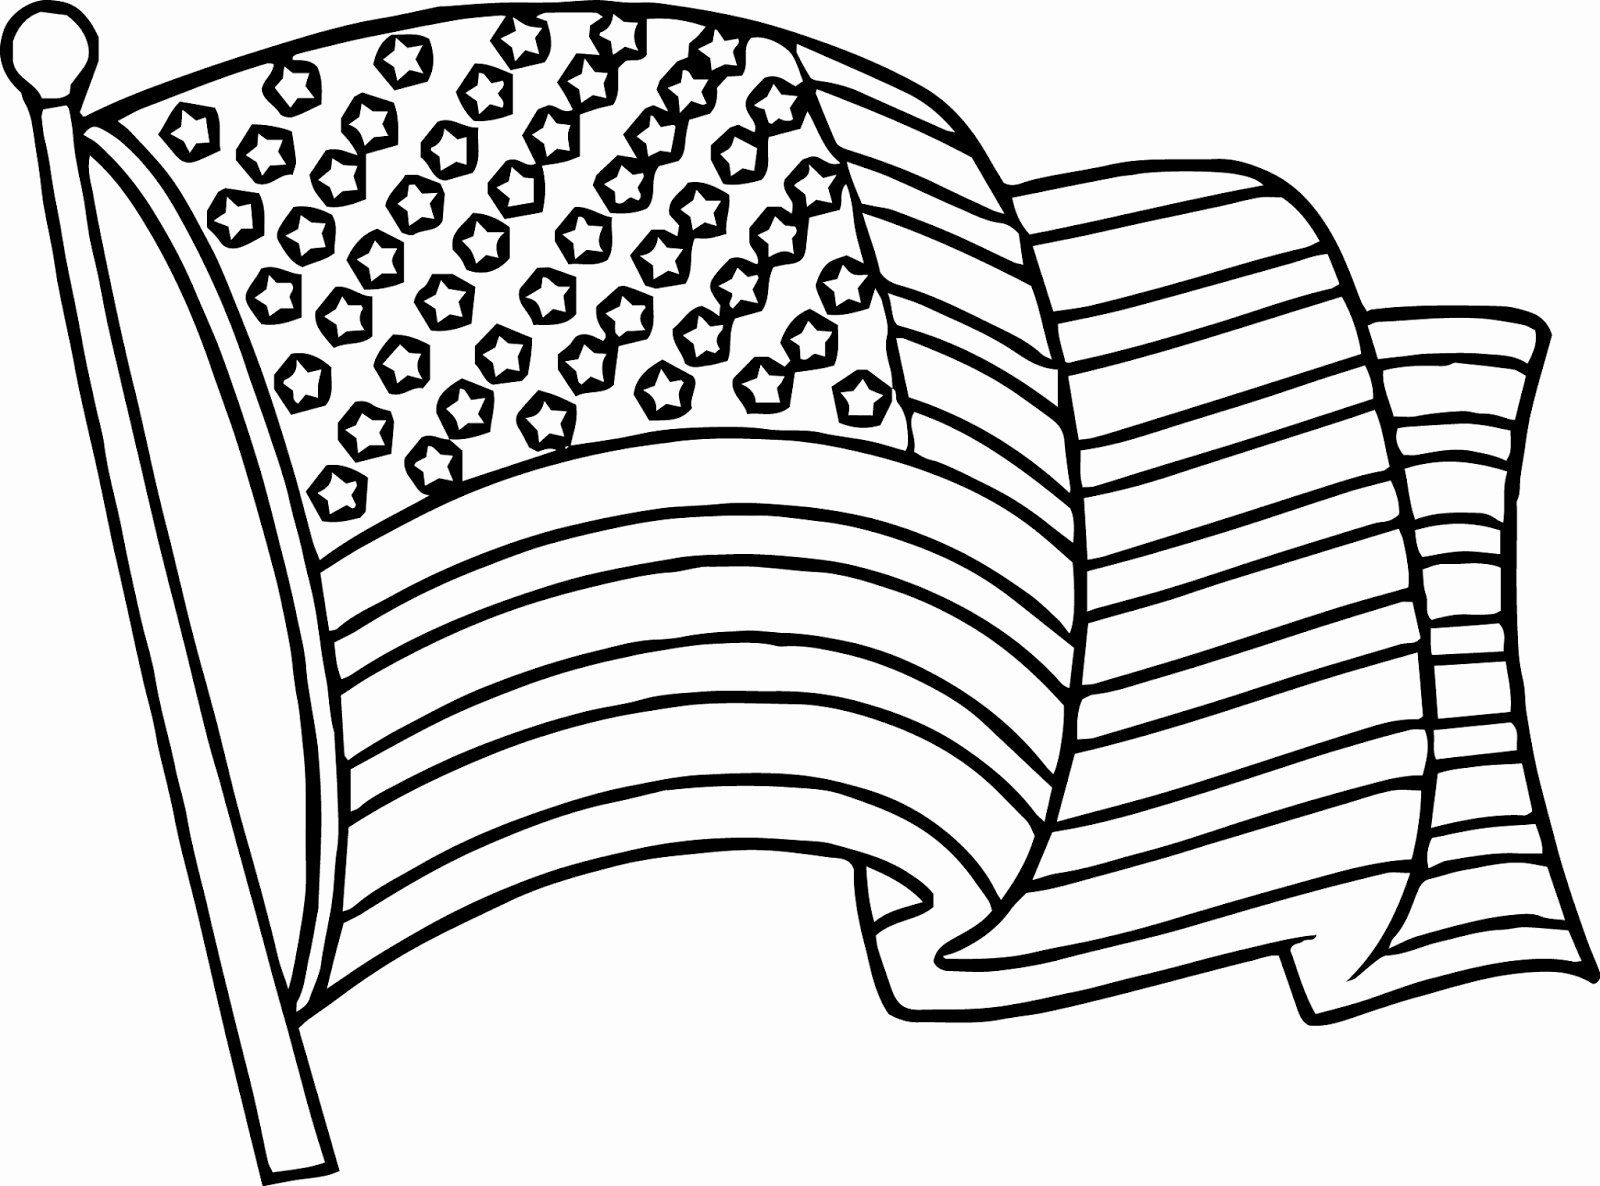 Maryland Flag Coloring Page Flag Coloring Pages American Flag